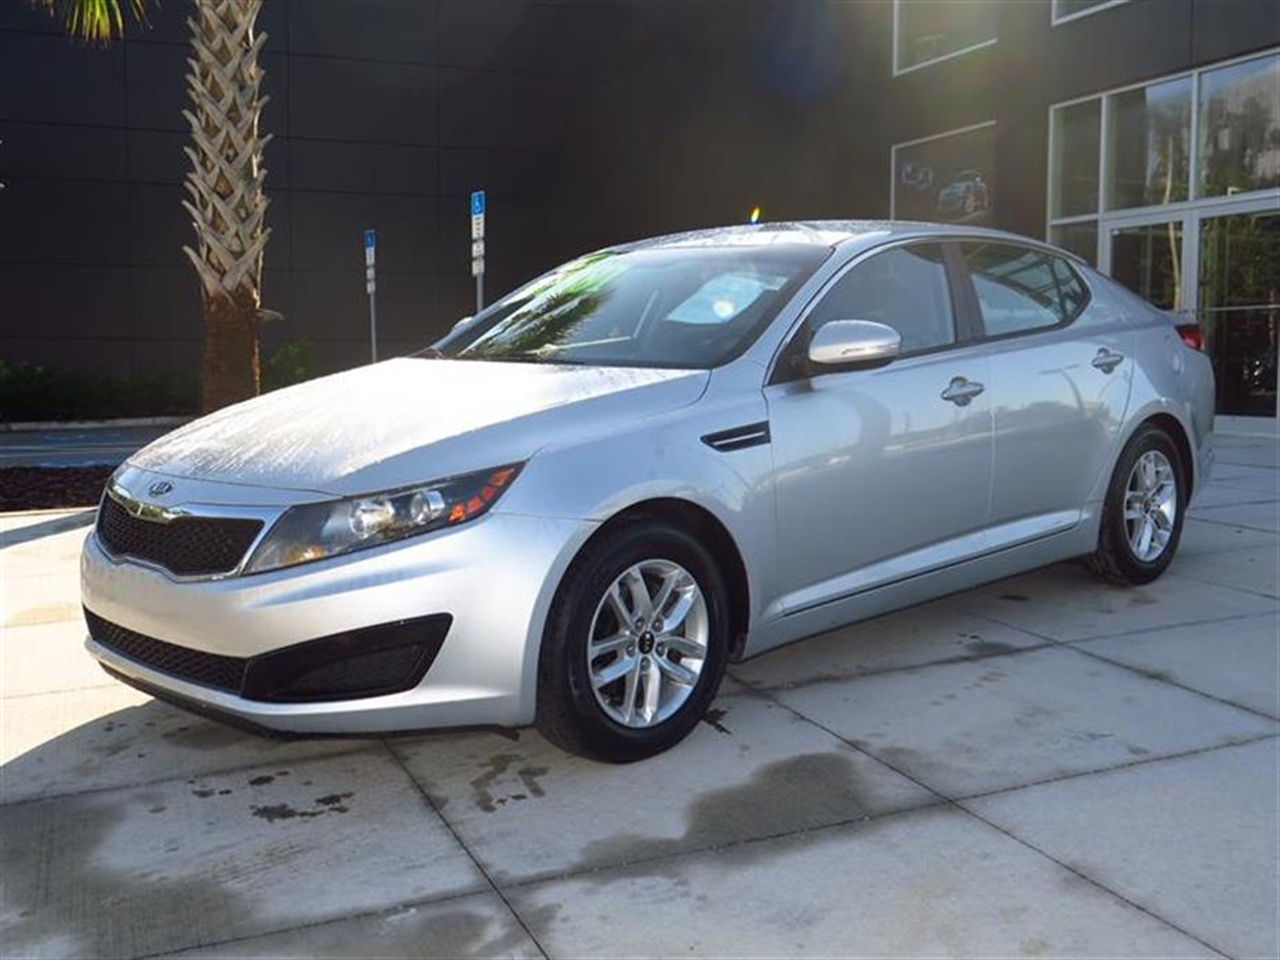 2011 KIA OPTIMA 4dr Sdn 24L Auto LX 65032 miles 2 aux pwr outlets 6040 split-folding rear ben